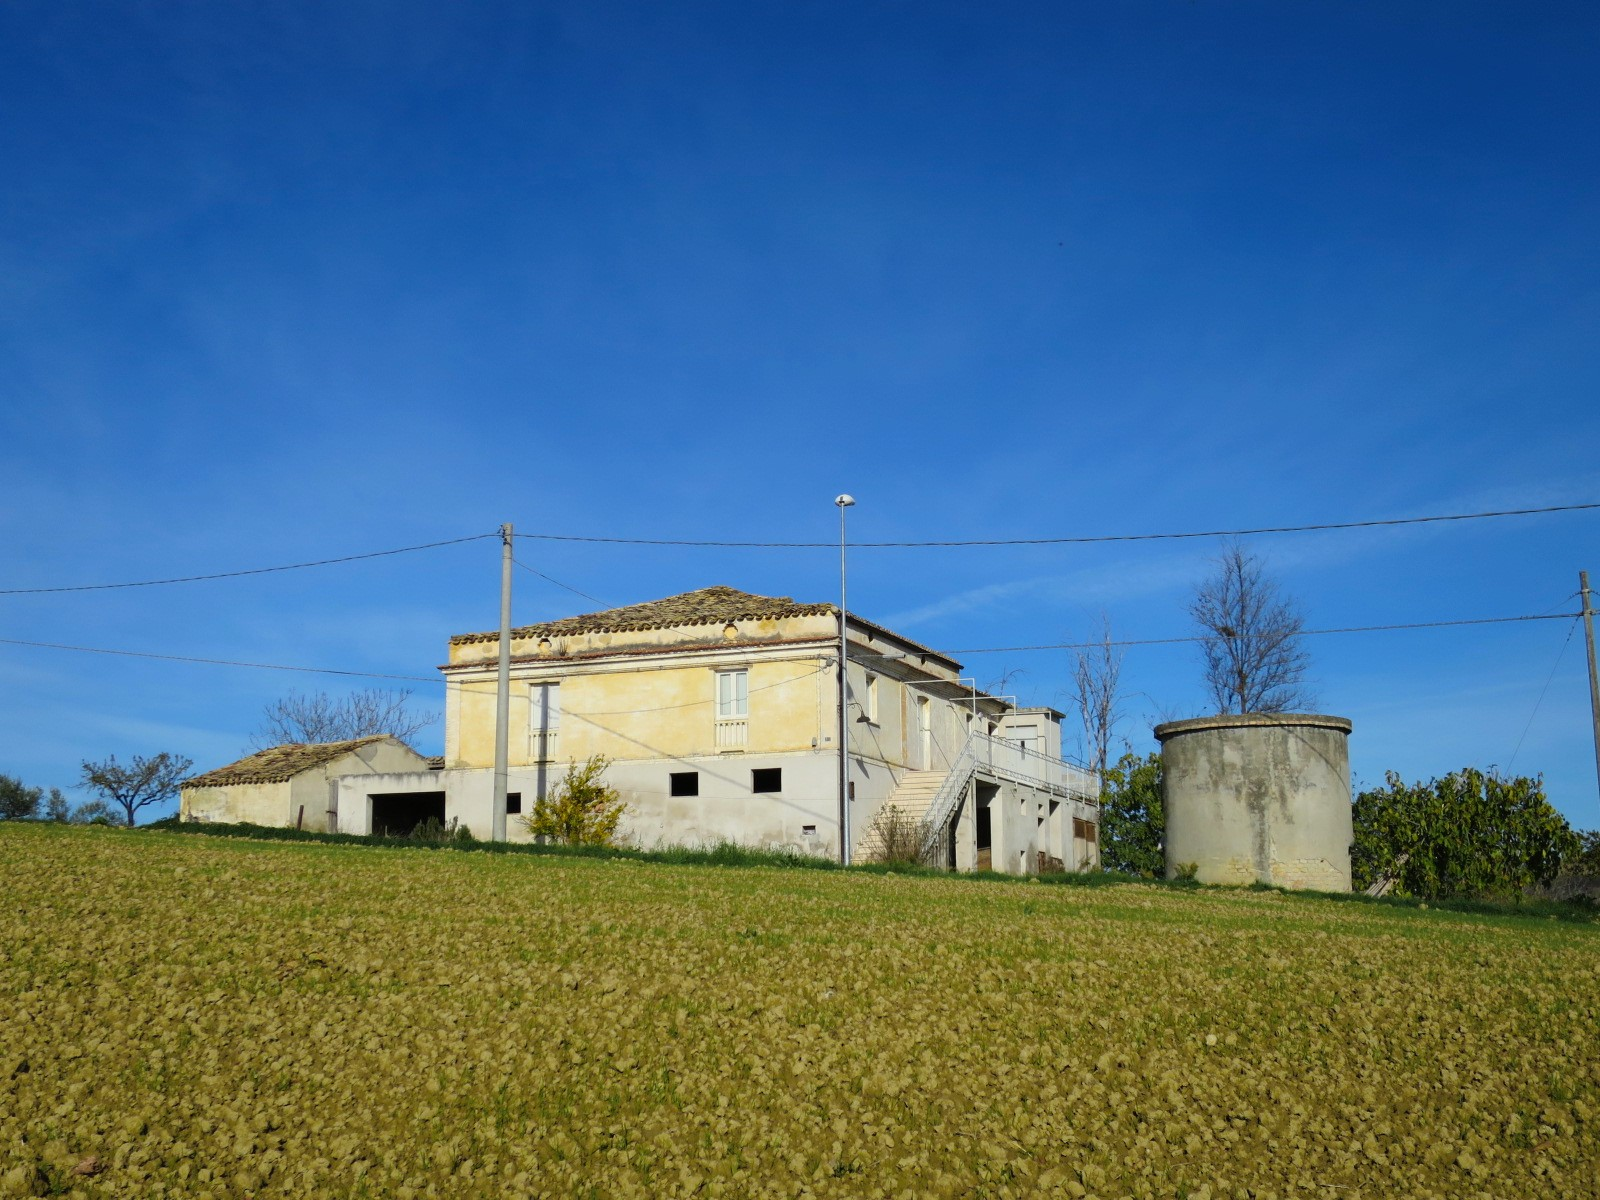 Country Houses Country Houses for sale Elice (PE), Casa Frantoio - Elice - EUR 182.886 10